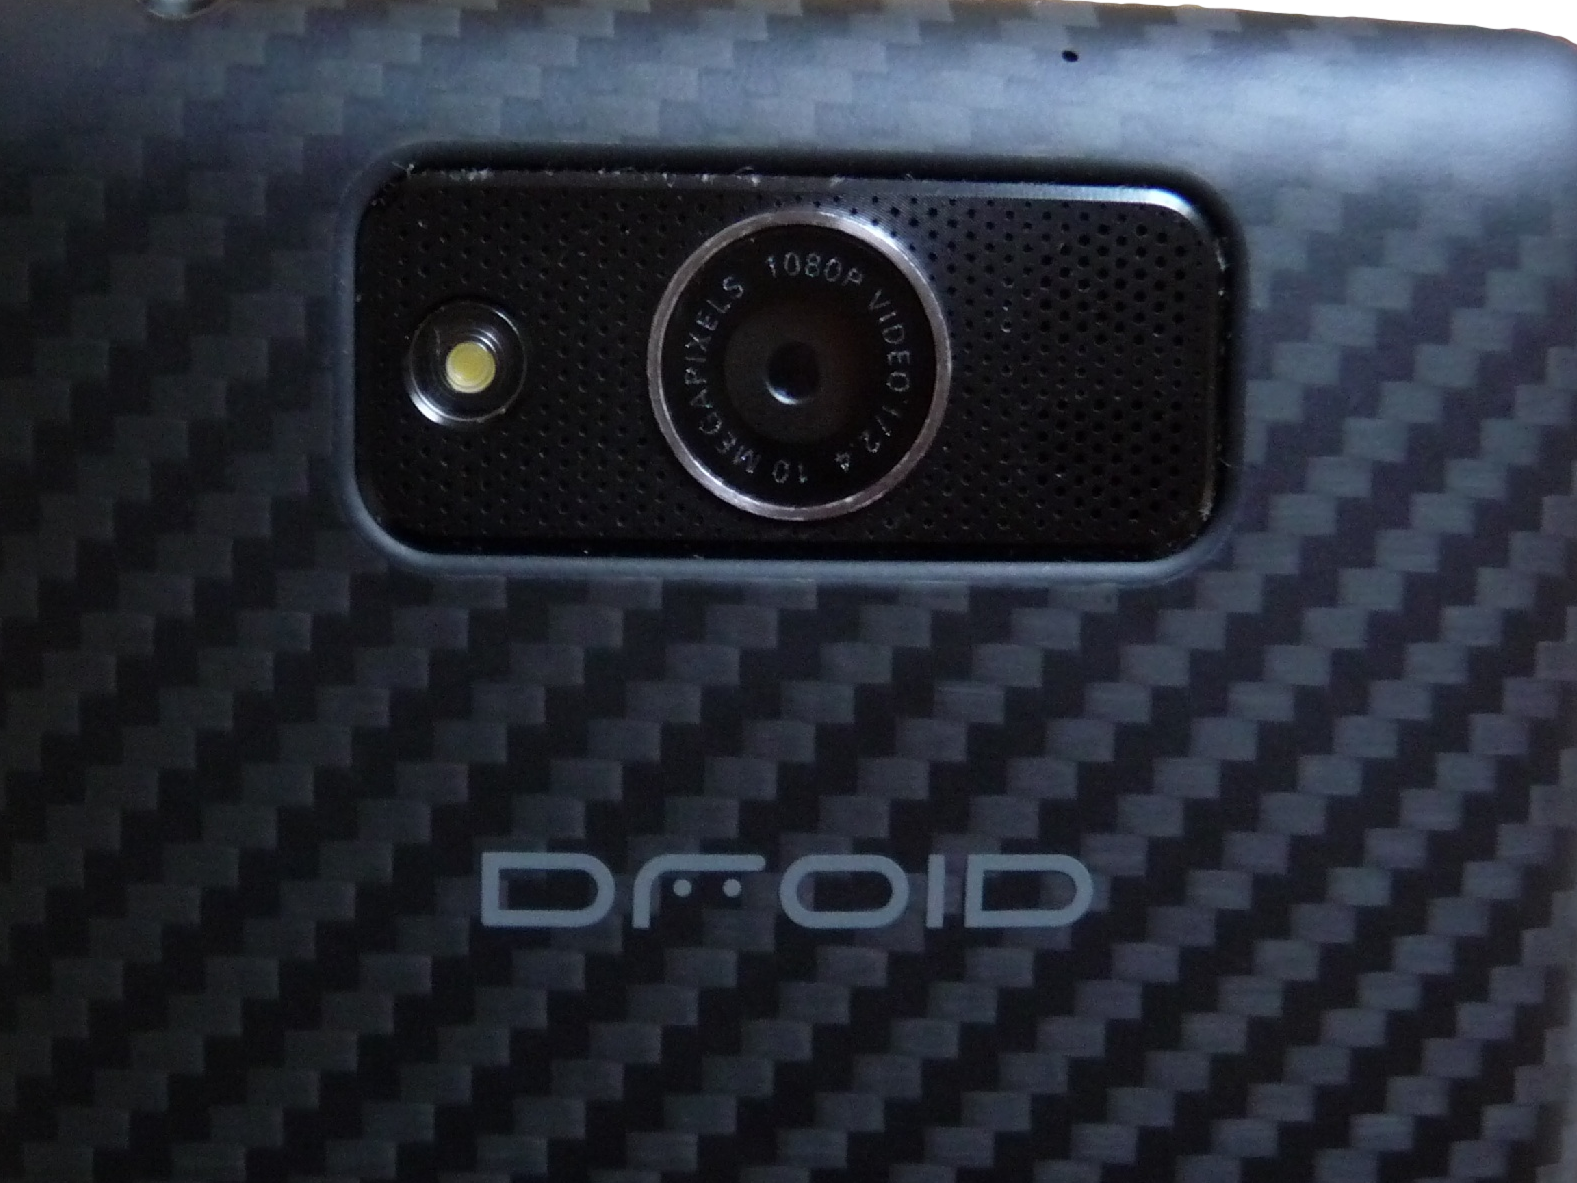 DroidMaxx Camera2 CloseCrop clipped rev 1 Best Smartphone: Droid Maxx   The Power To Get Things Done